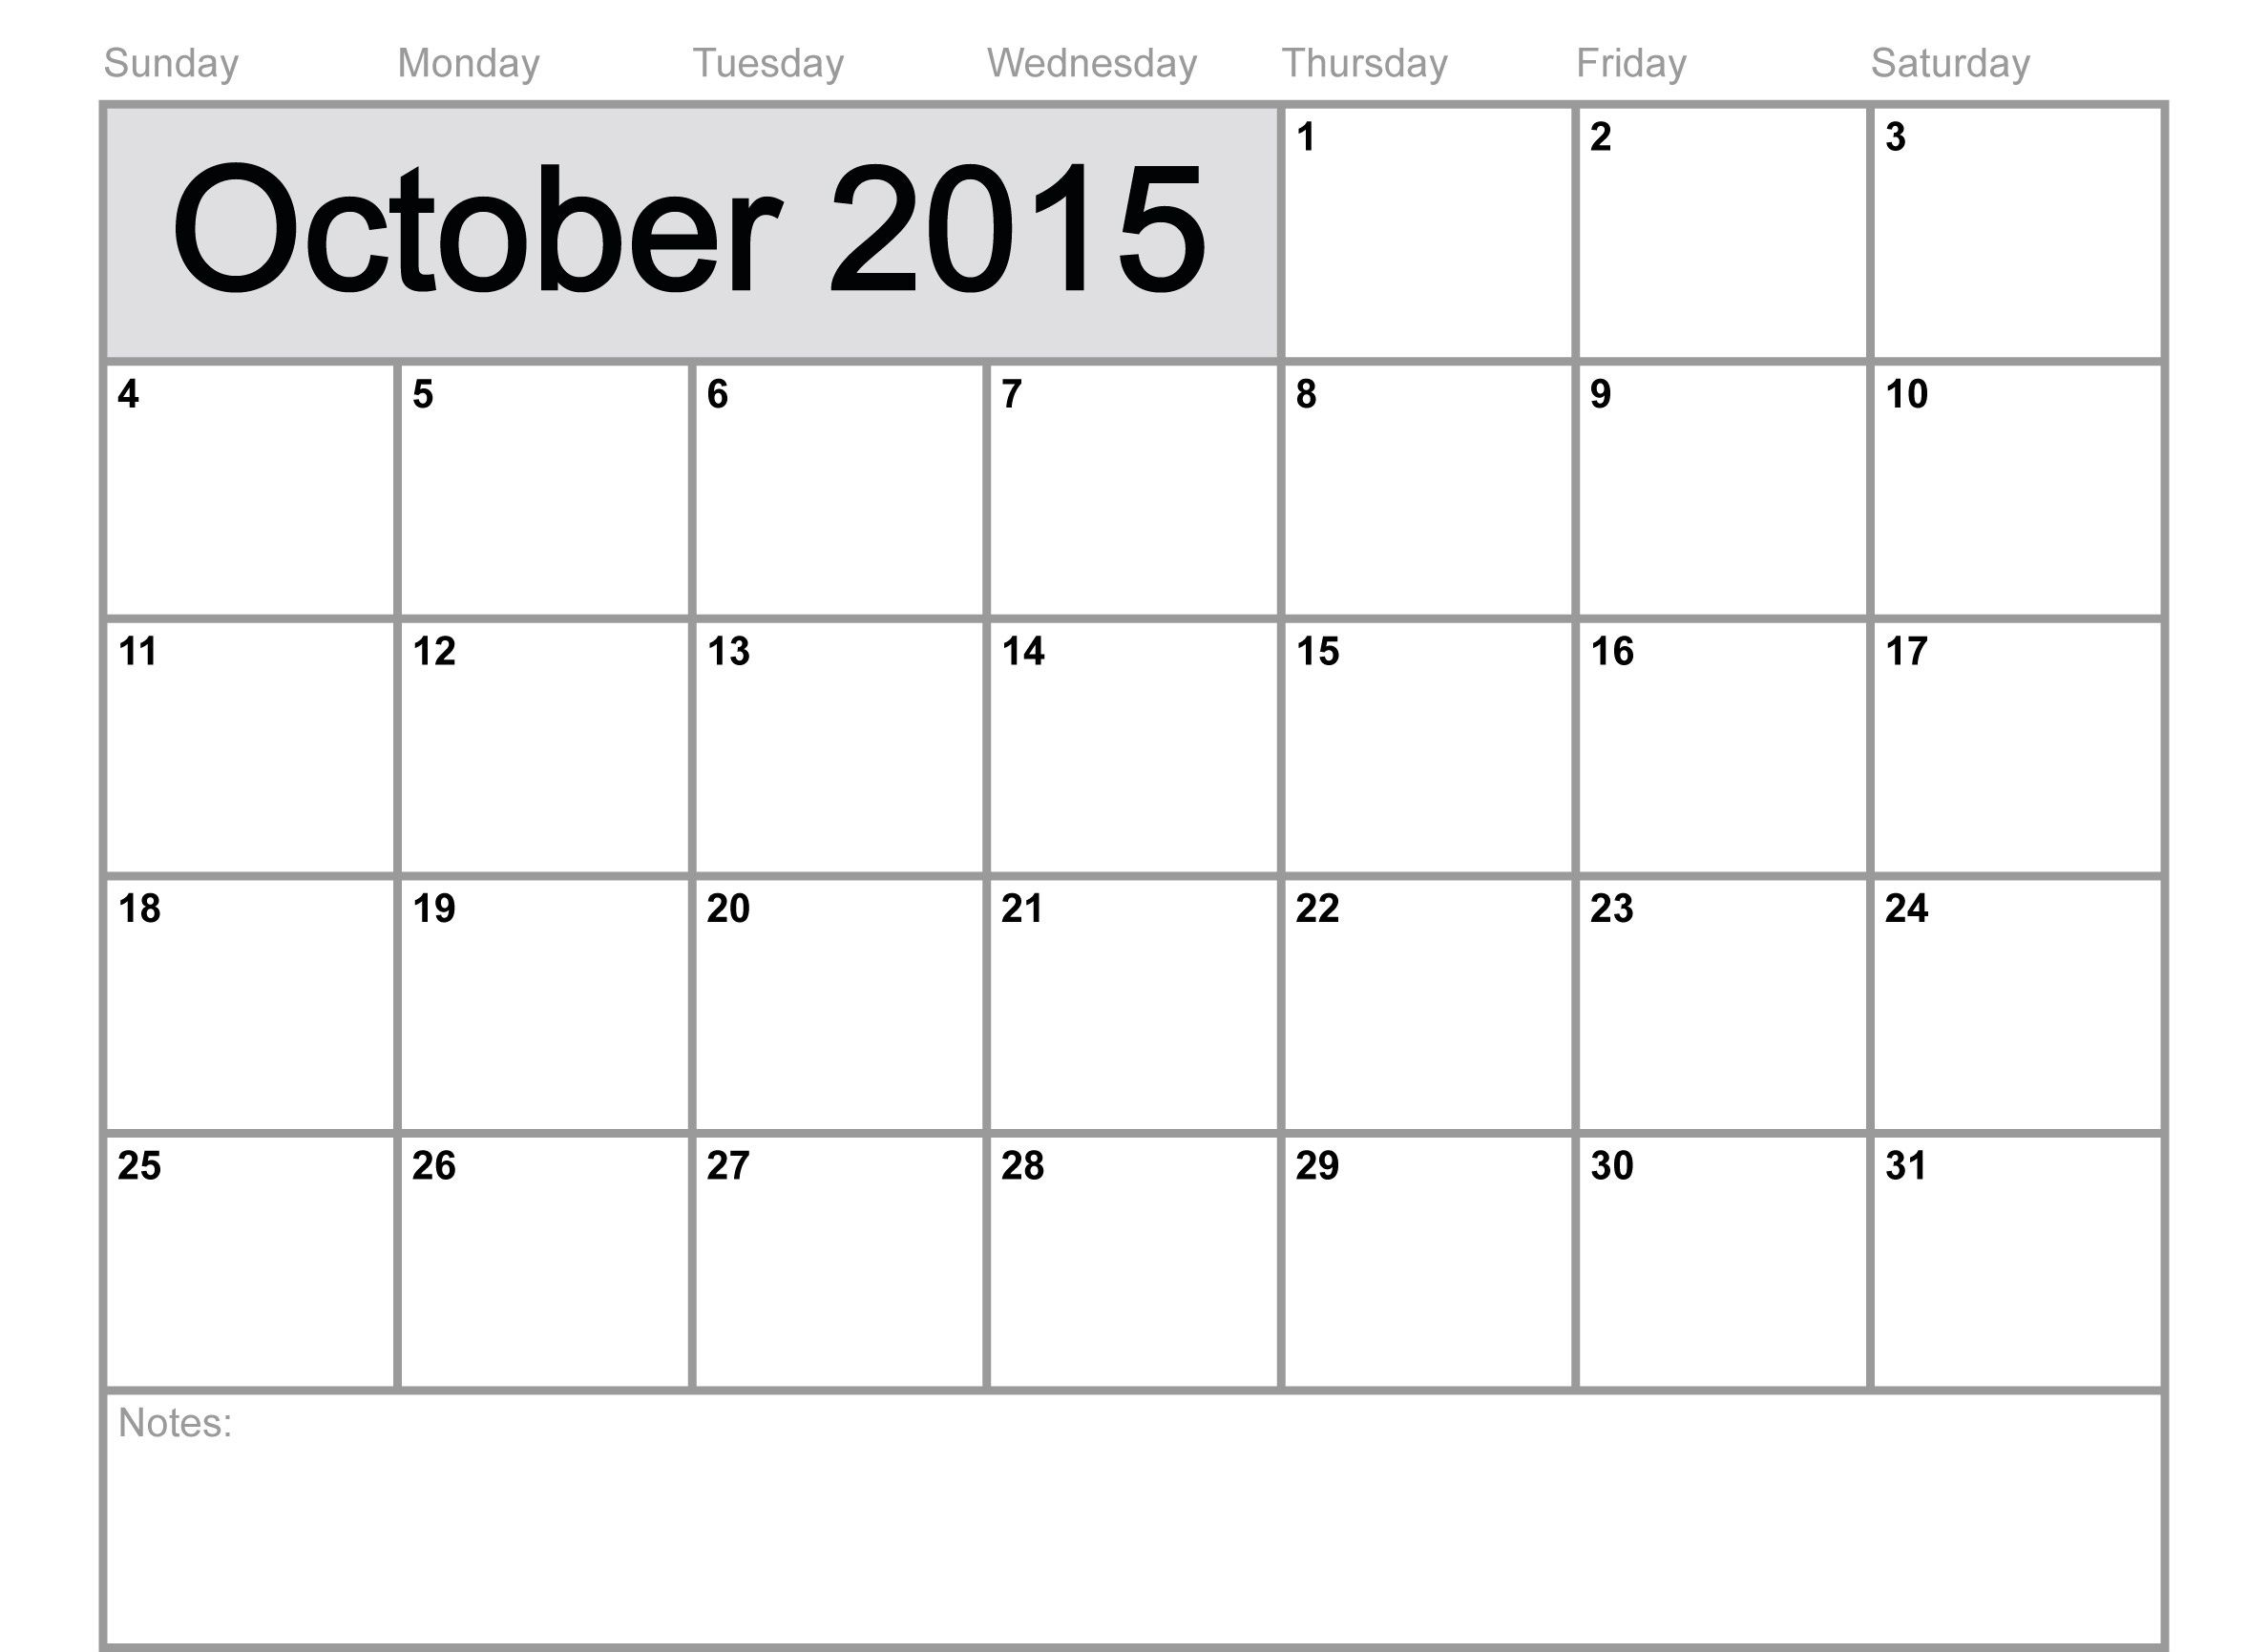 Free Download Calendar October 2015 Nz Pictures Images Templates